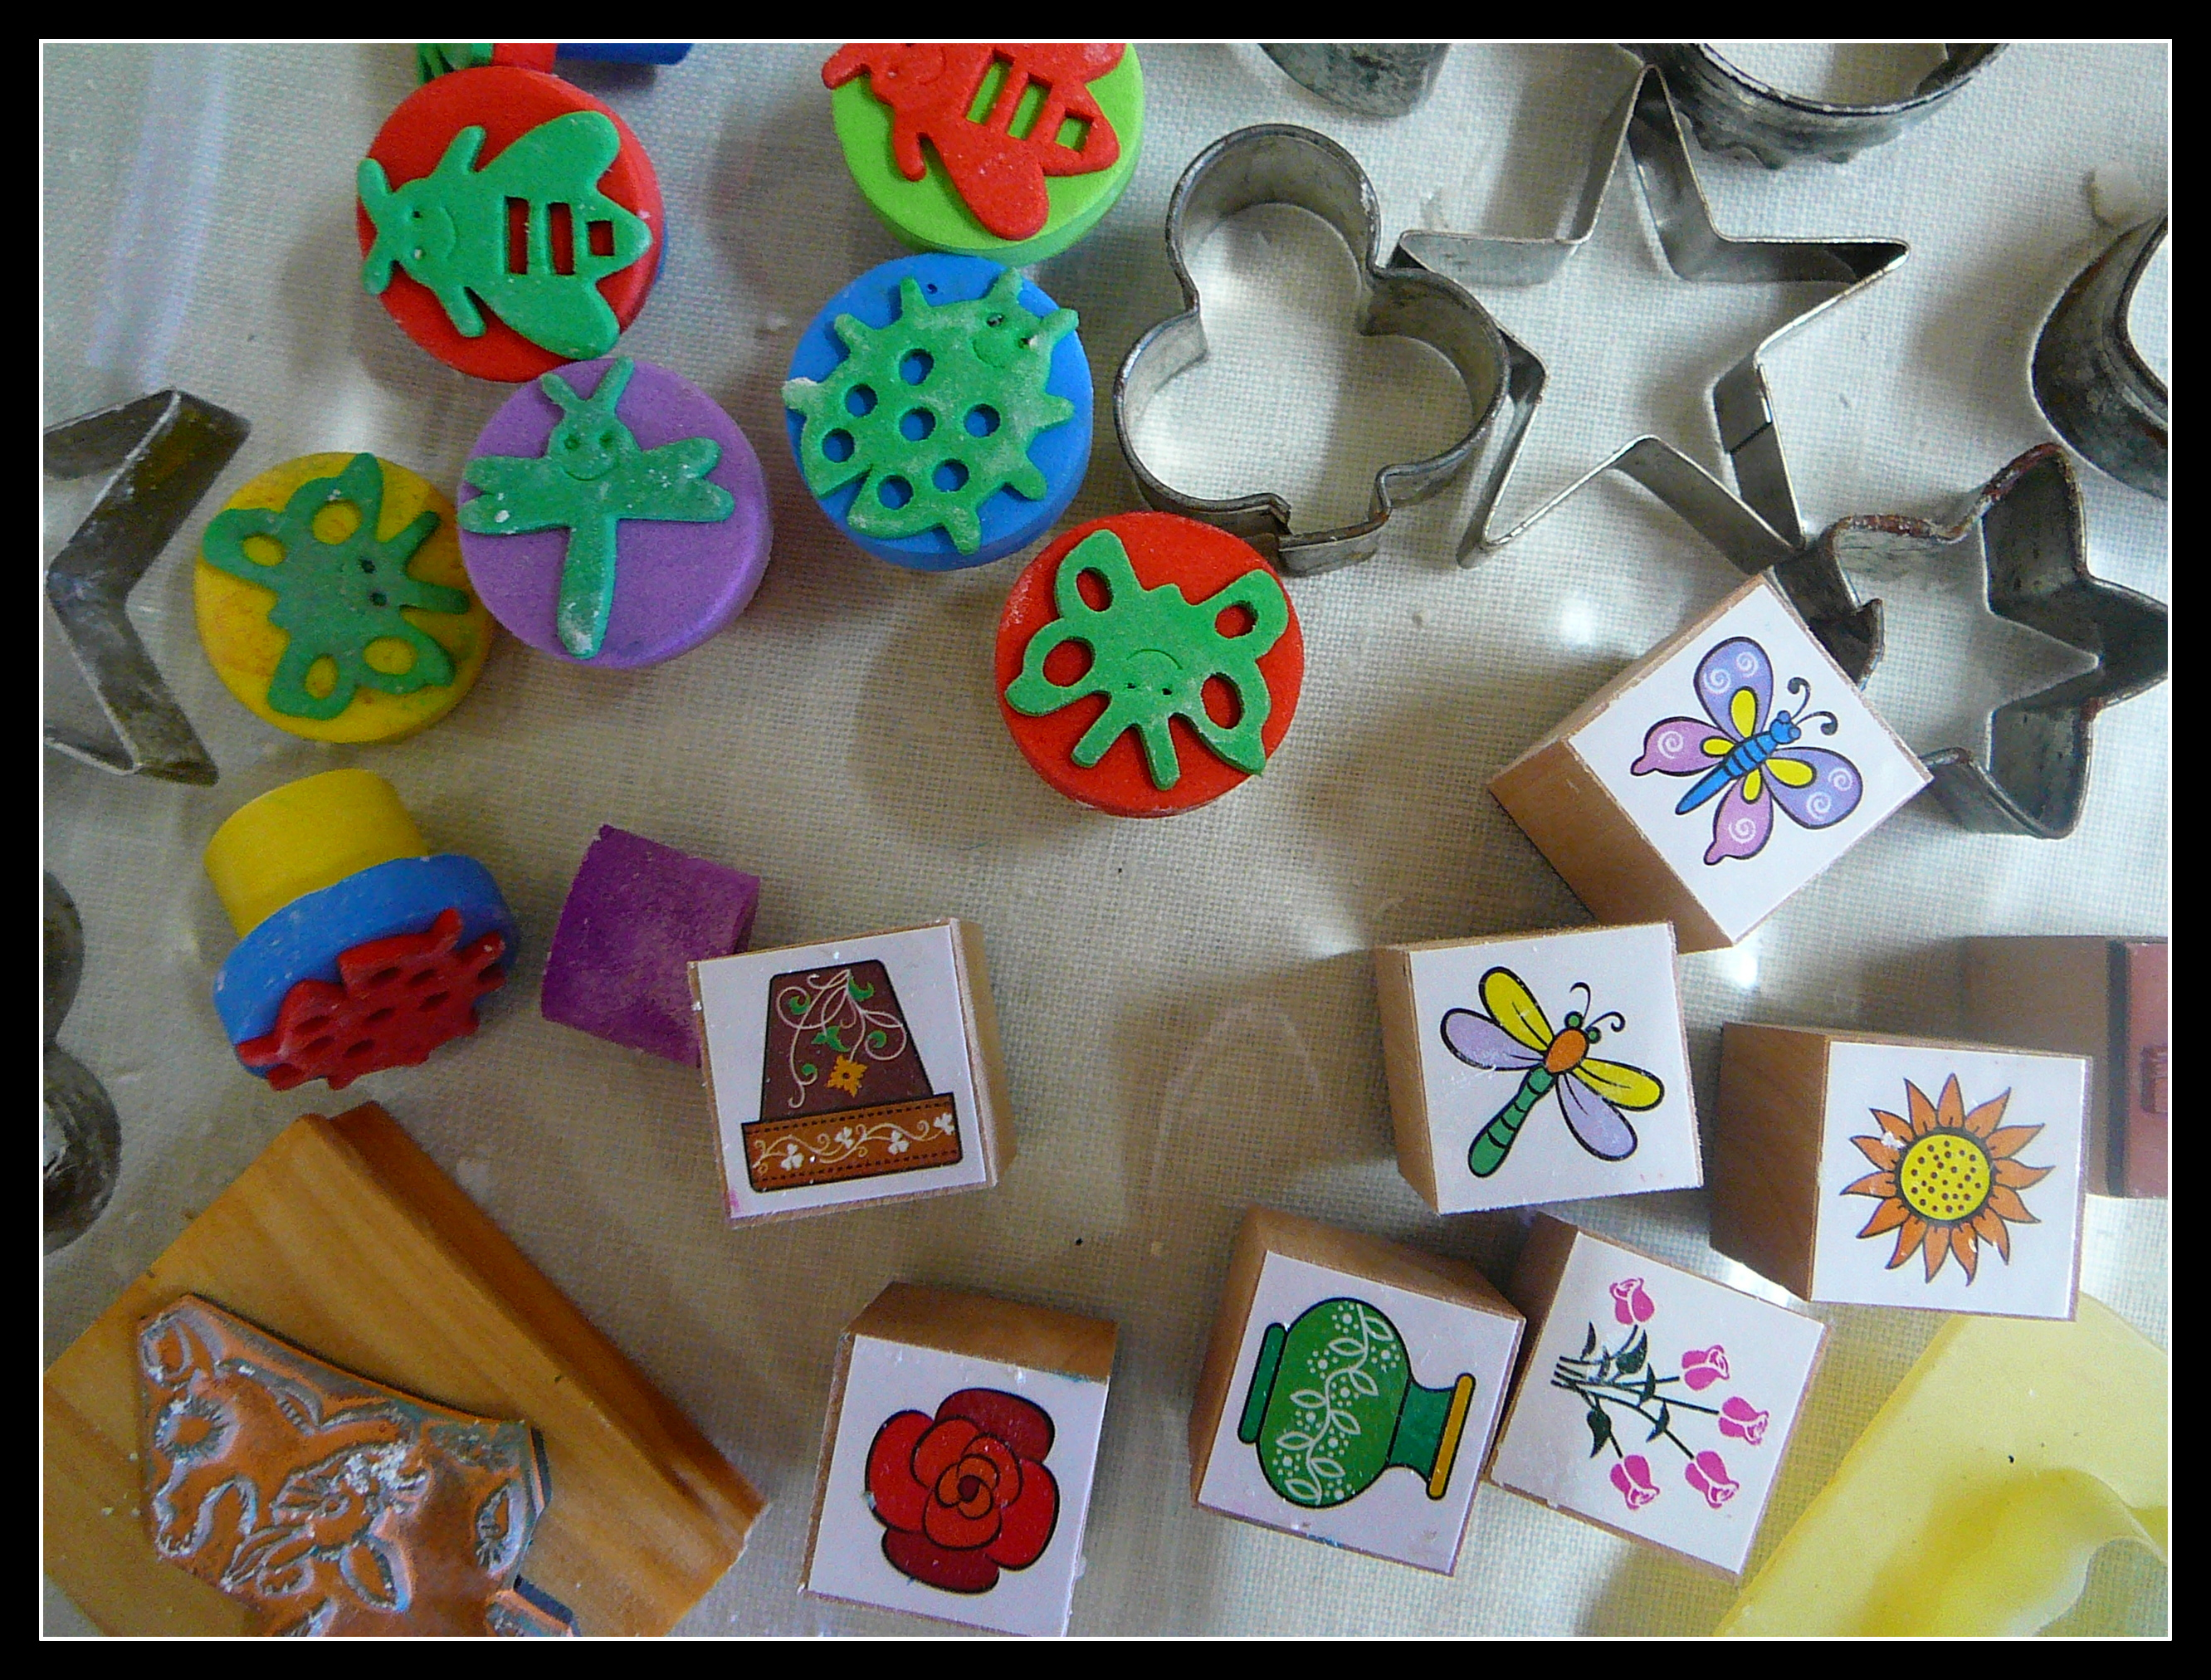 Corn Starch Clay Decorations